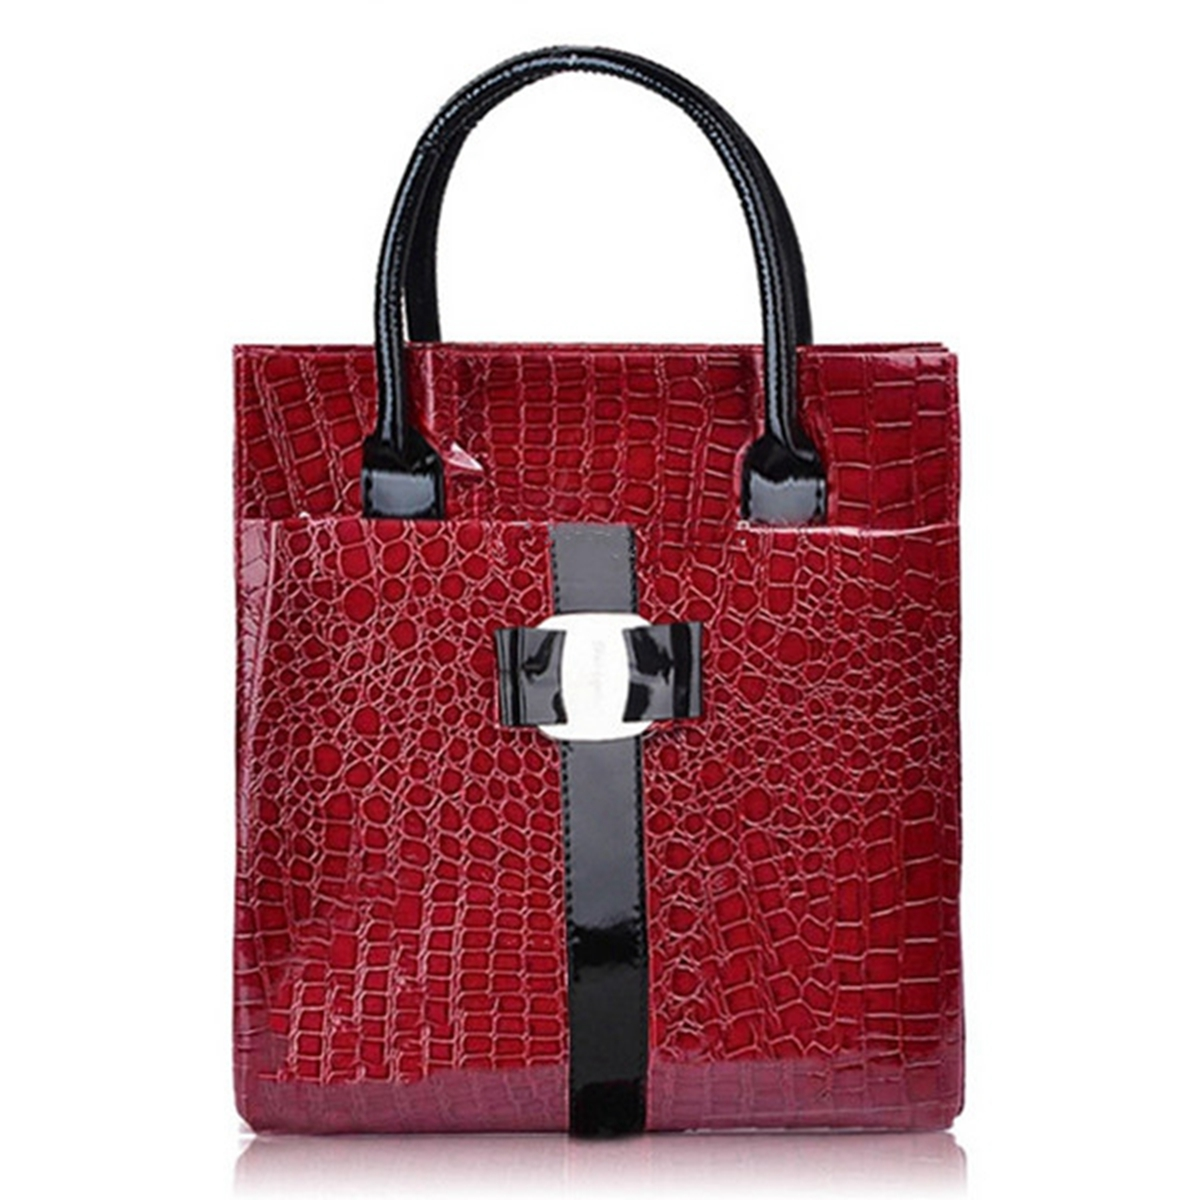 Women OL Lady Crocodile Pattern Leather Shoulder Bag Handbag Satchel Tote New